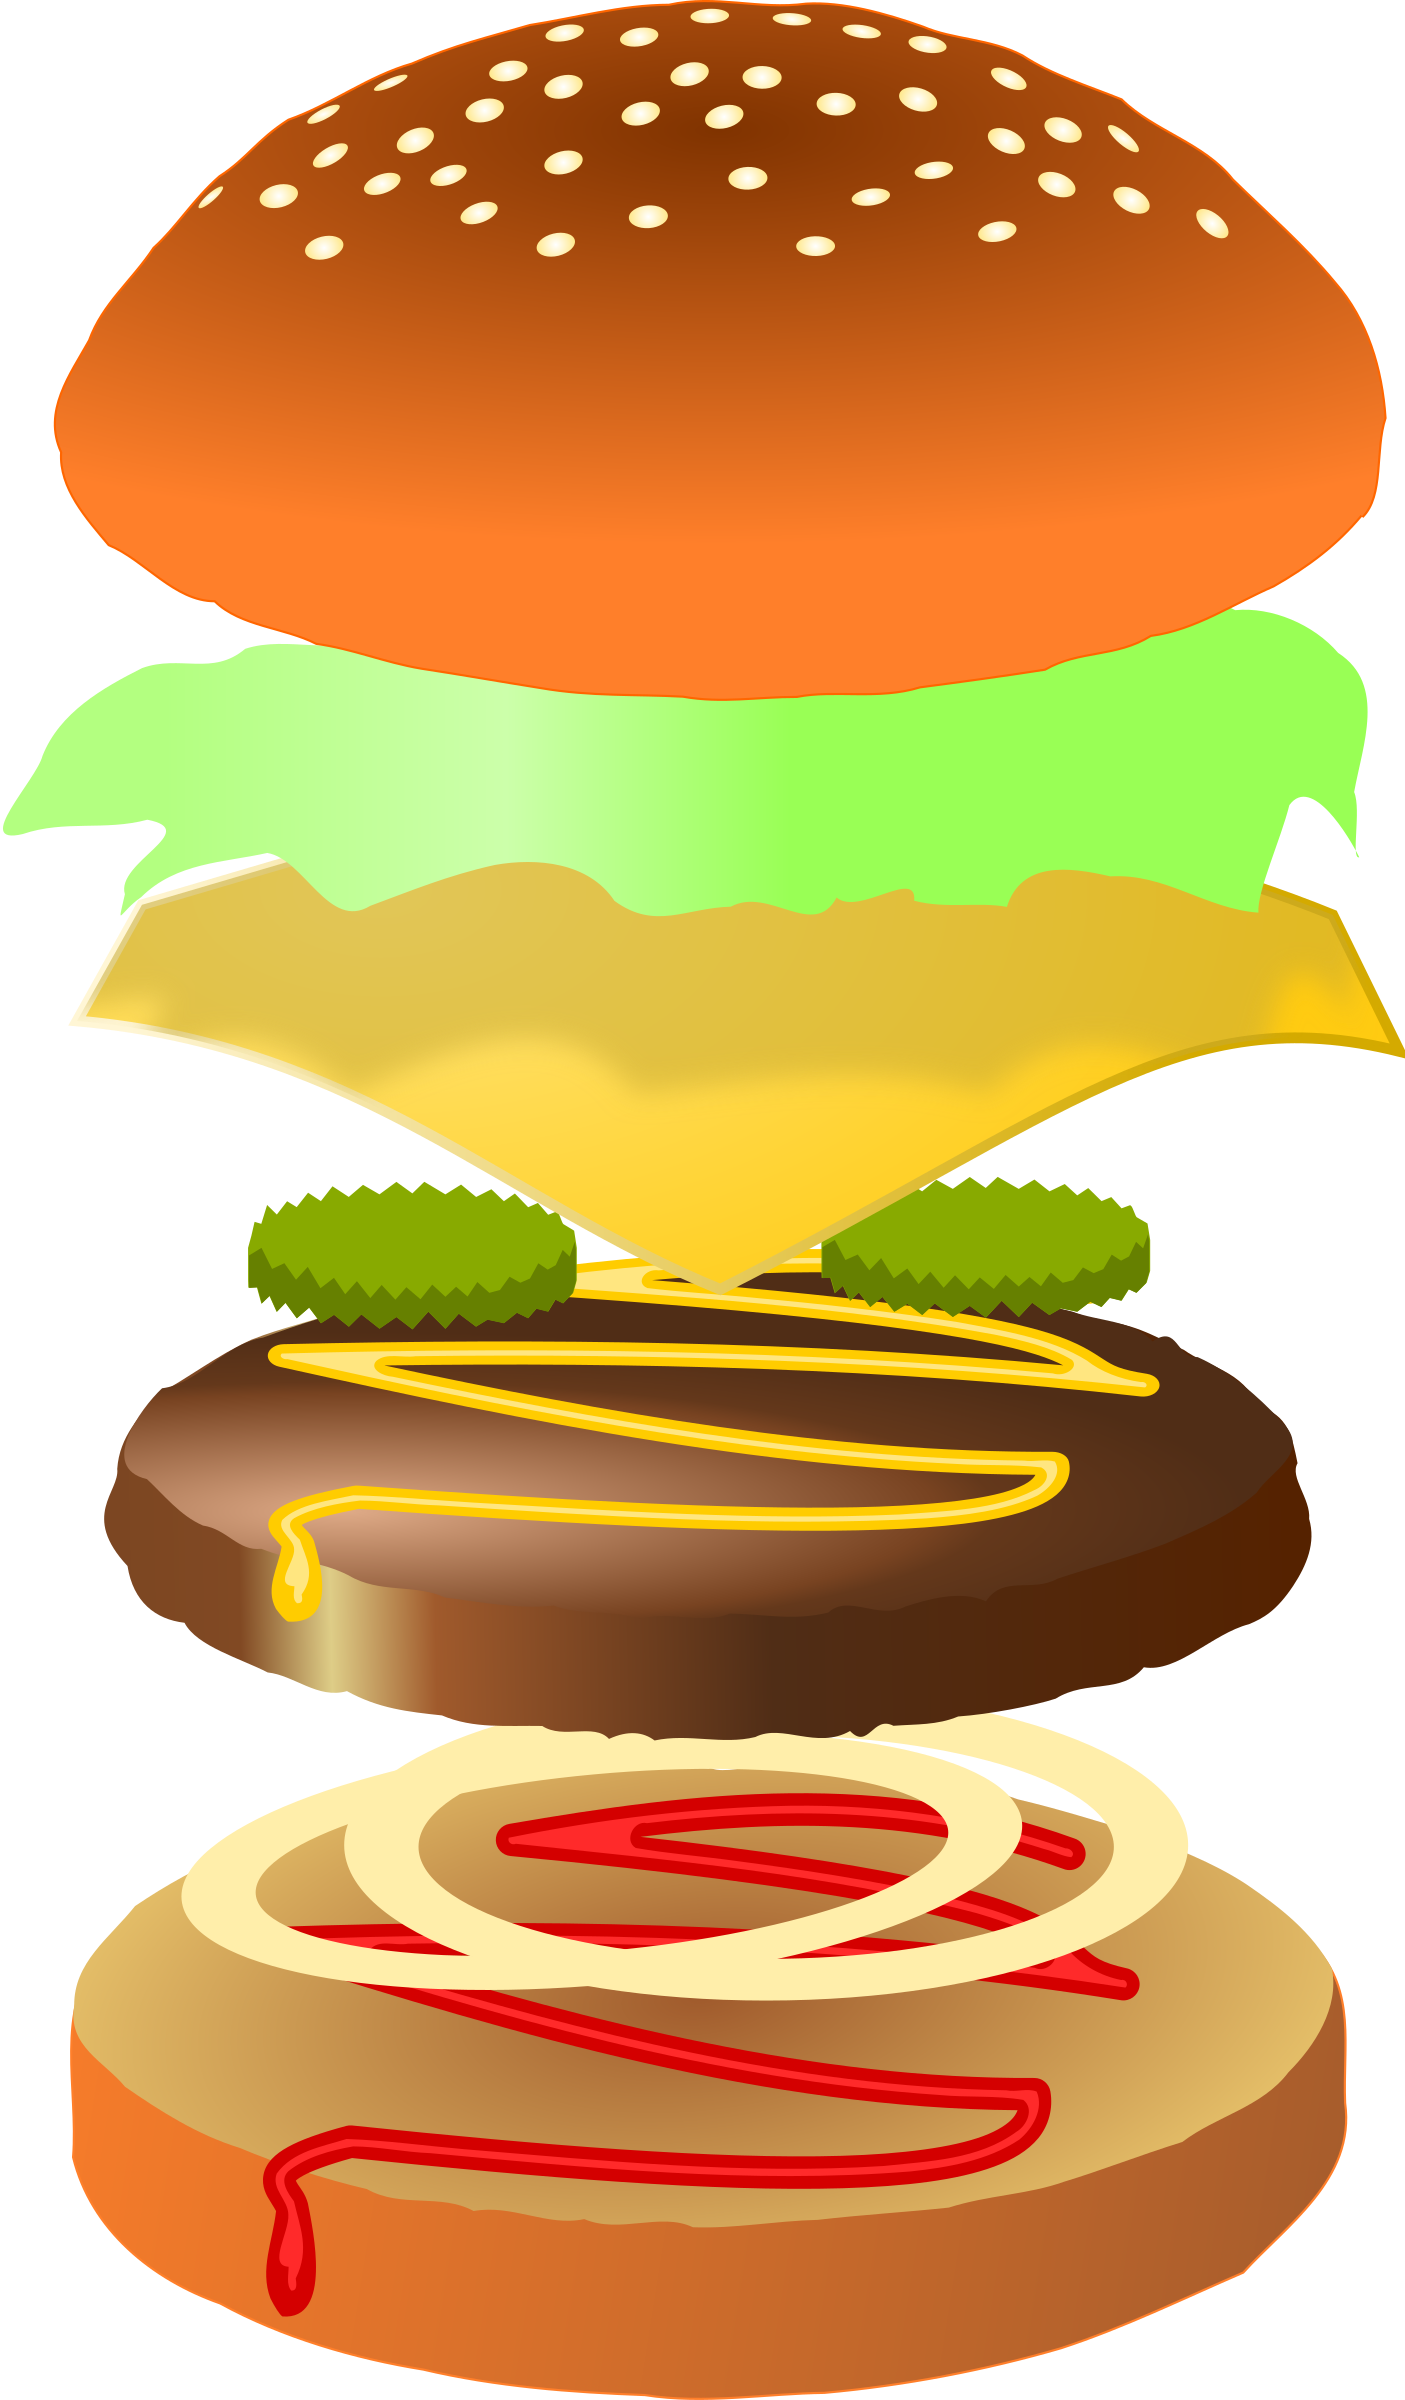 Hamburger by studio_hades